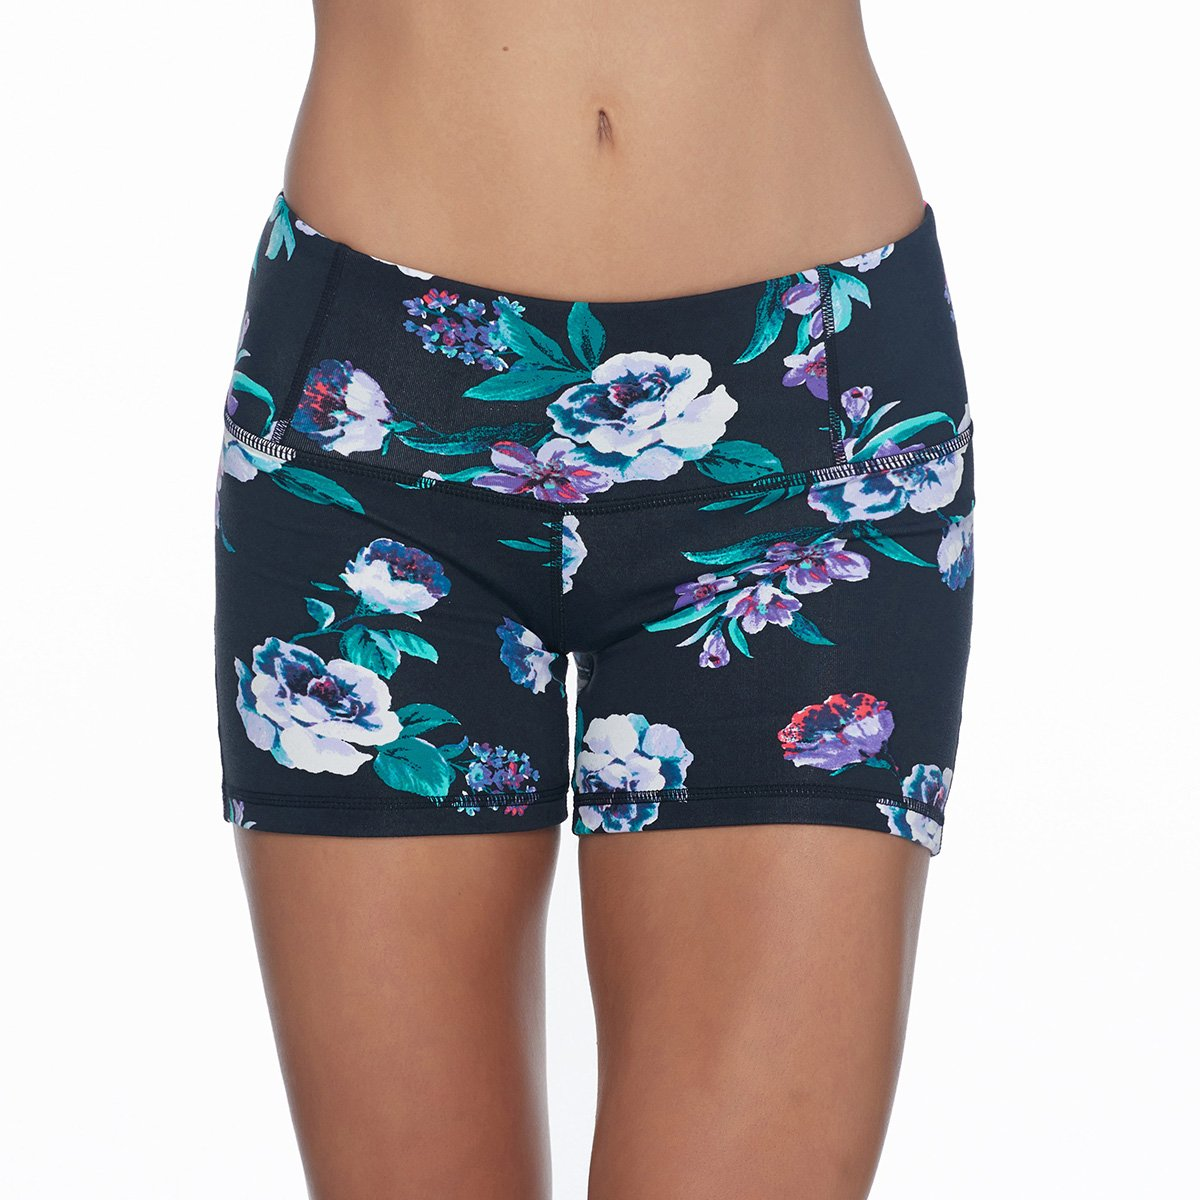 Flower Print Get Shorty Shorts